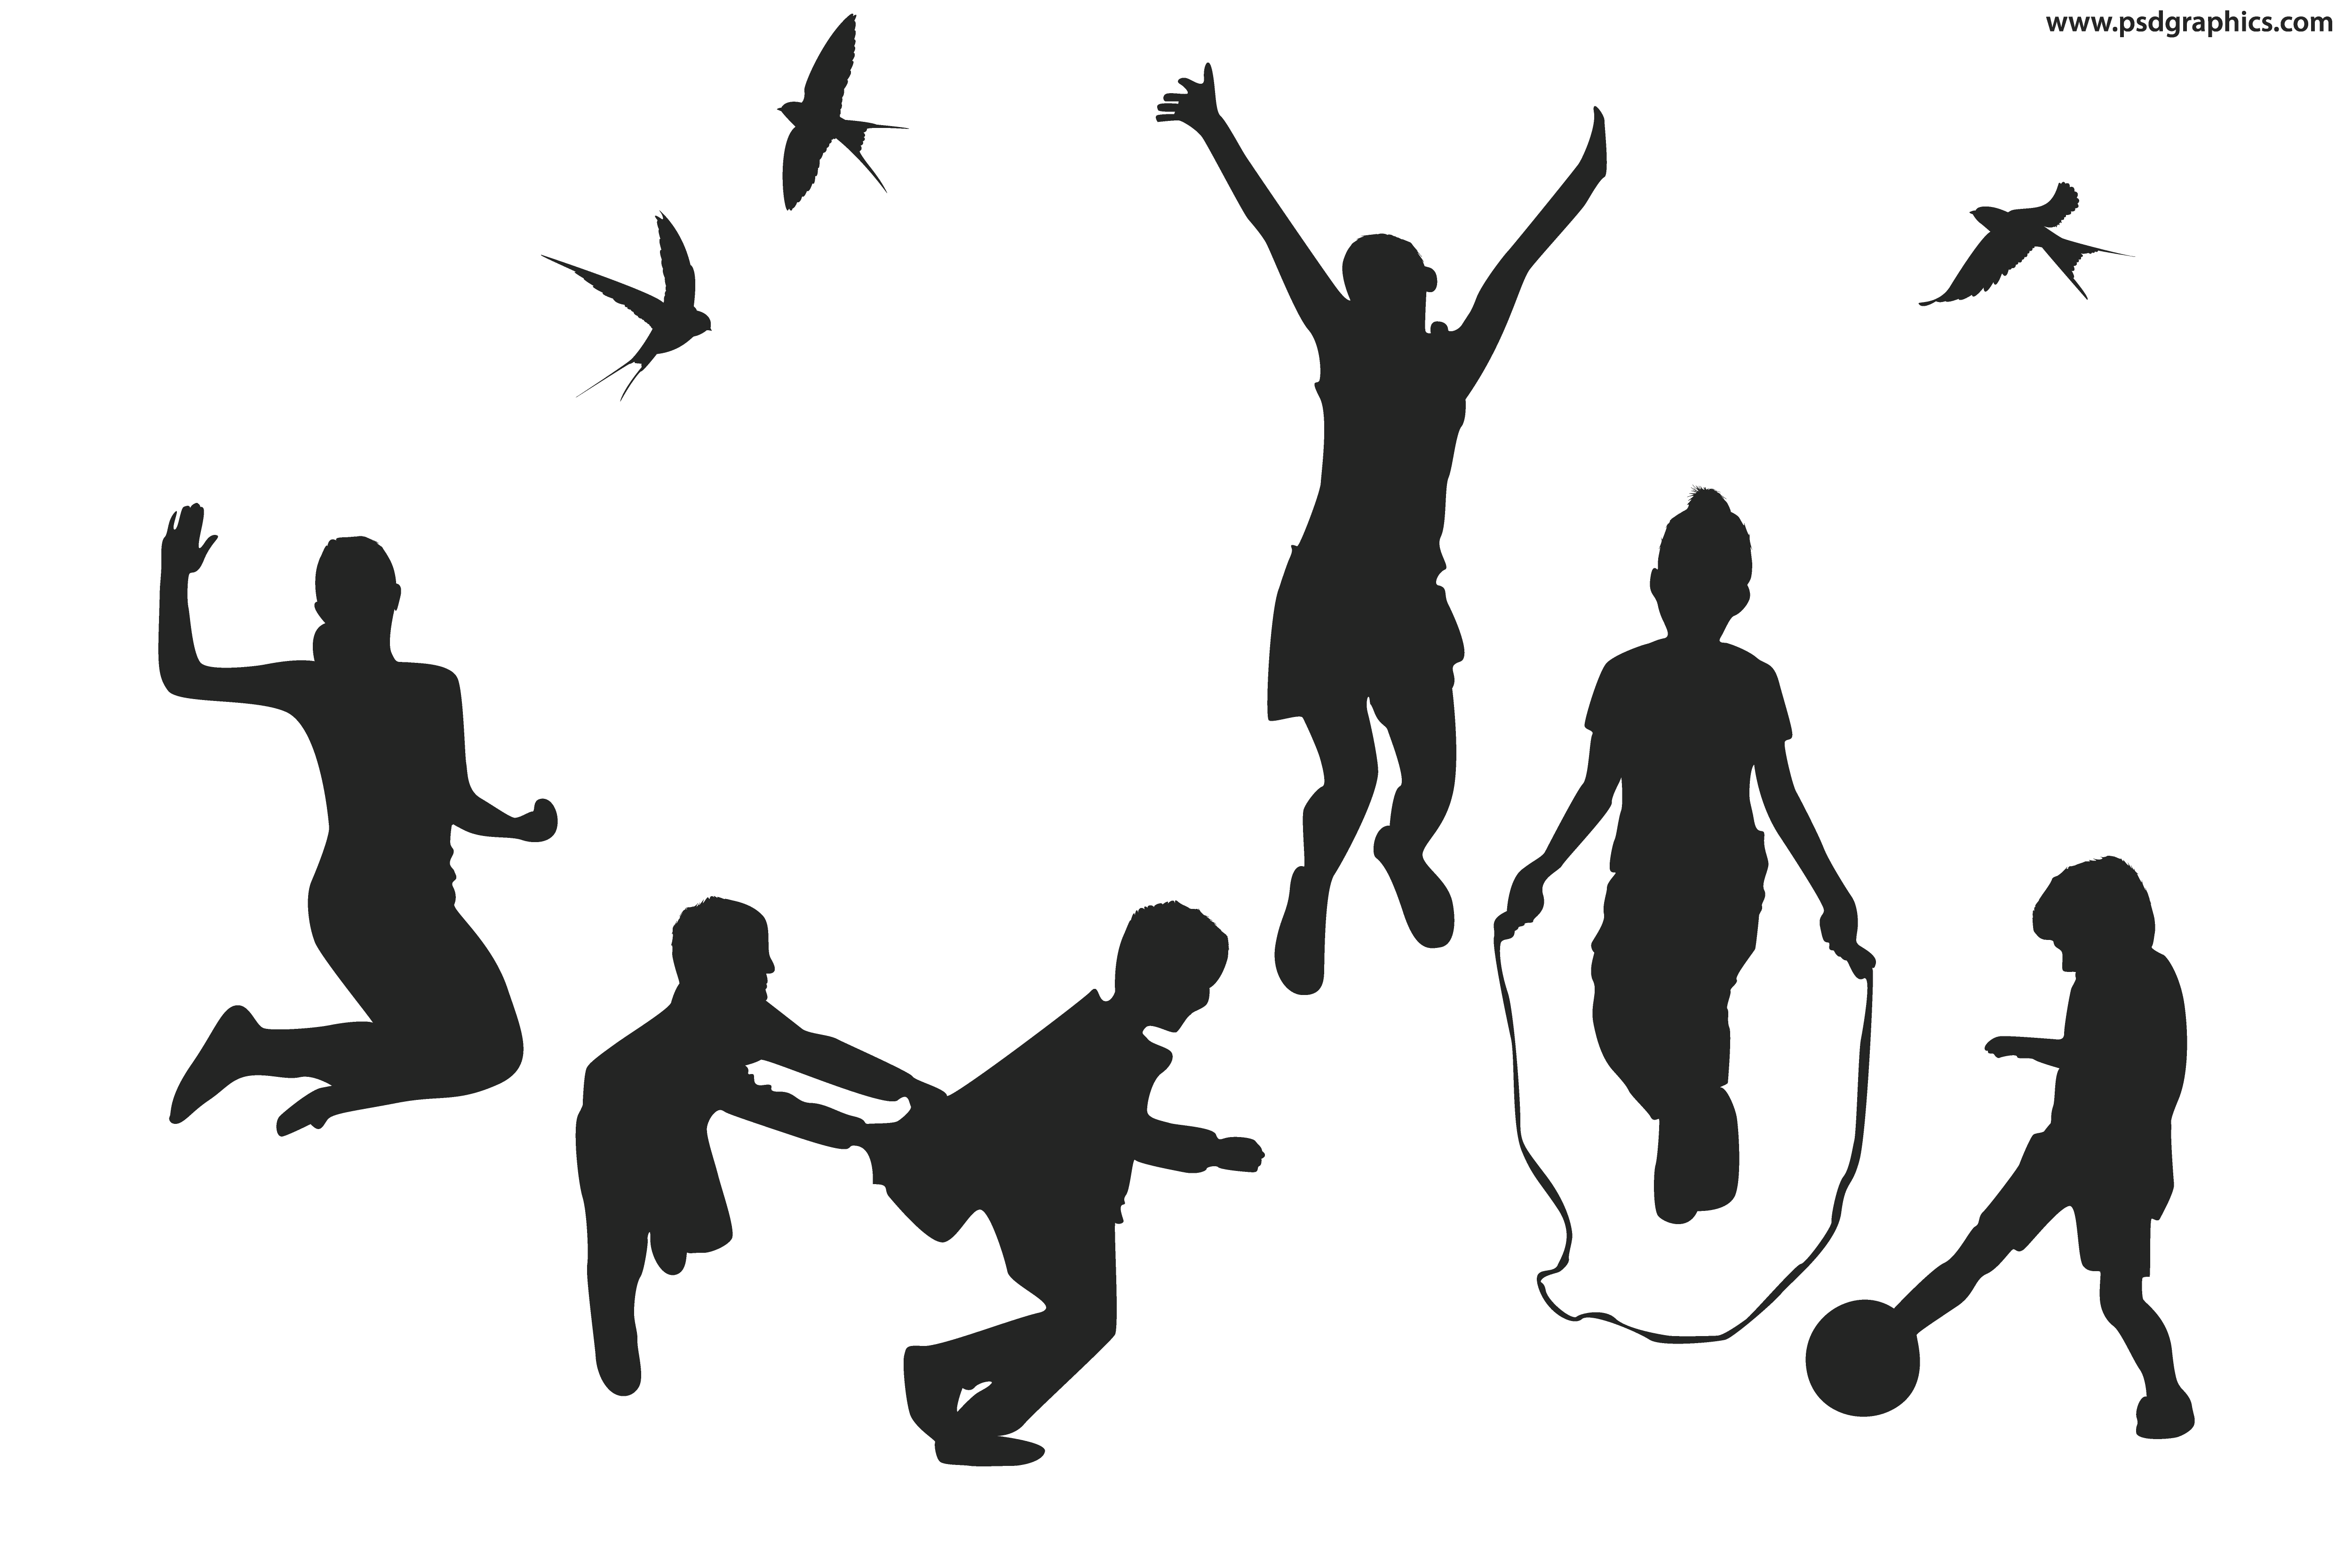 5000x3333 Playful Children Vector Silhouettes Psdgraphics Cold Shoulder